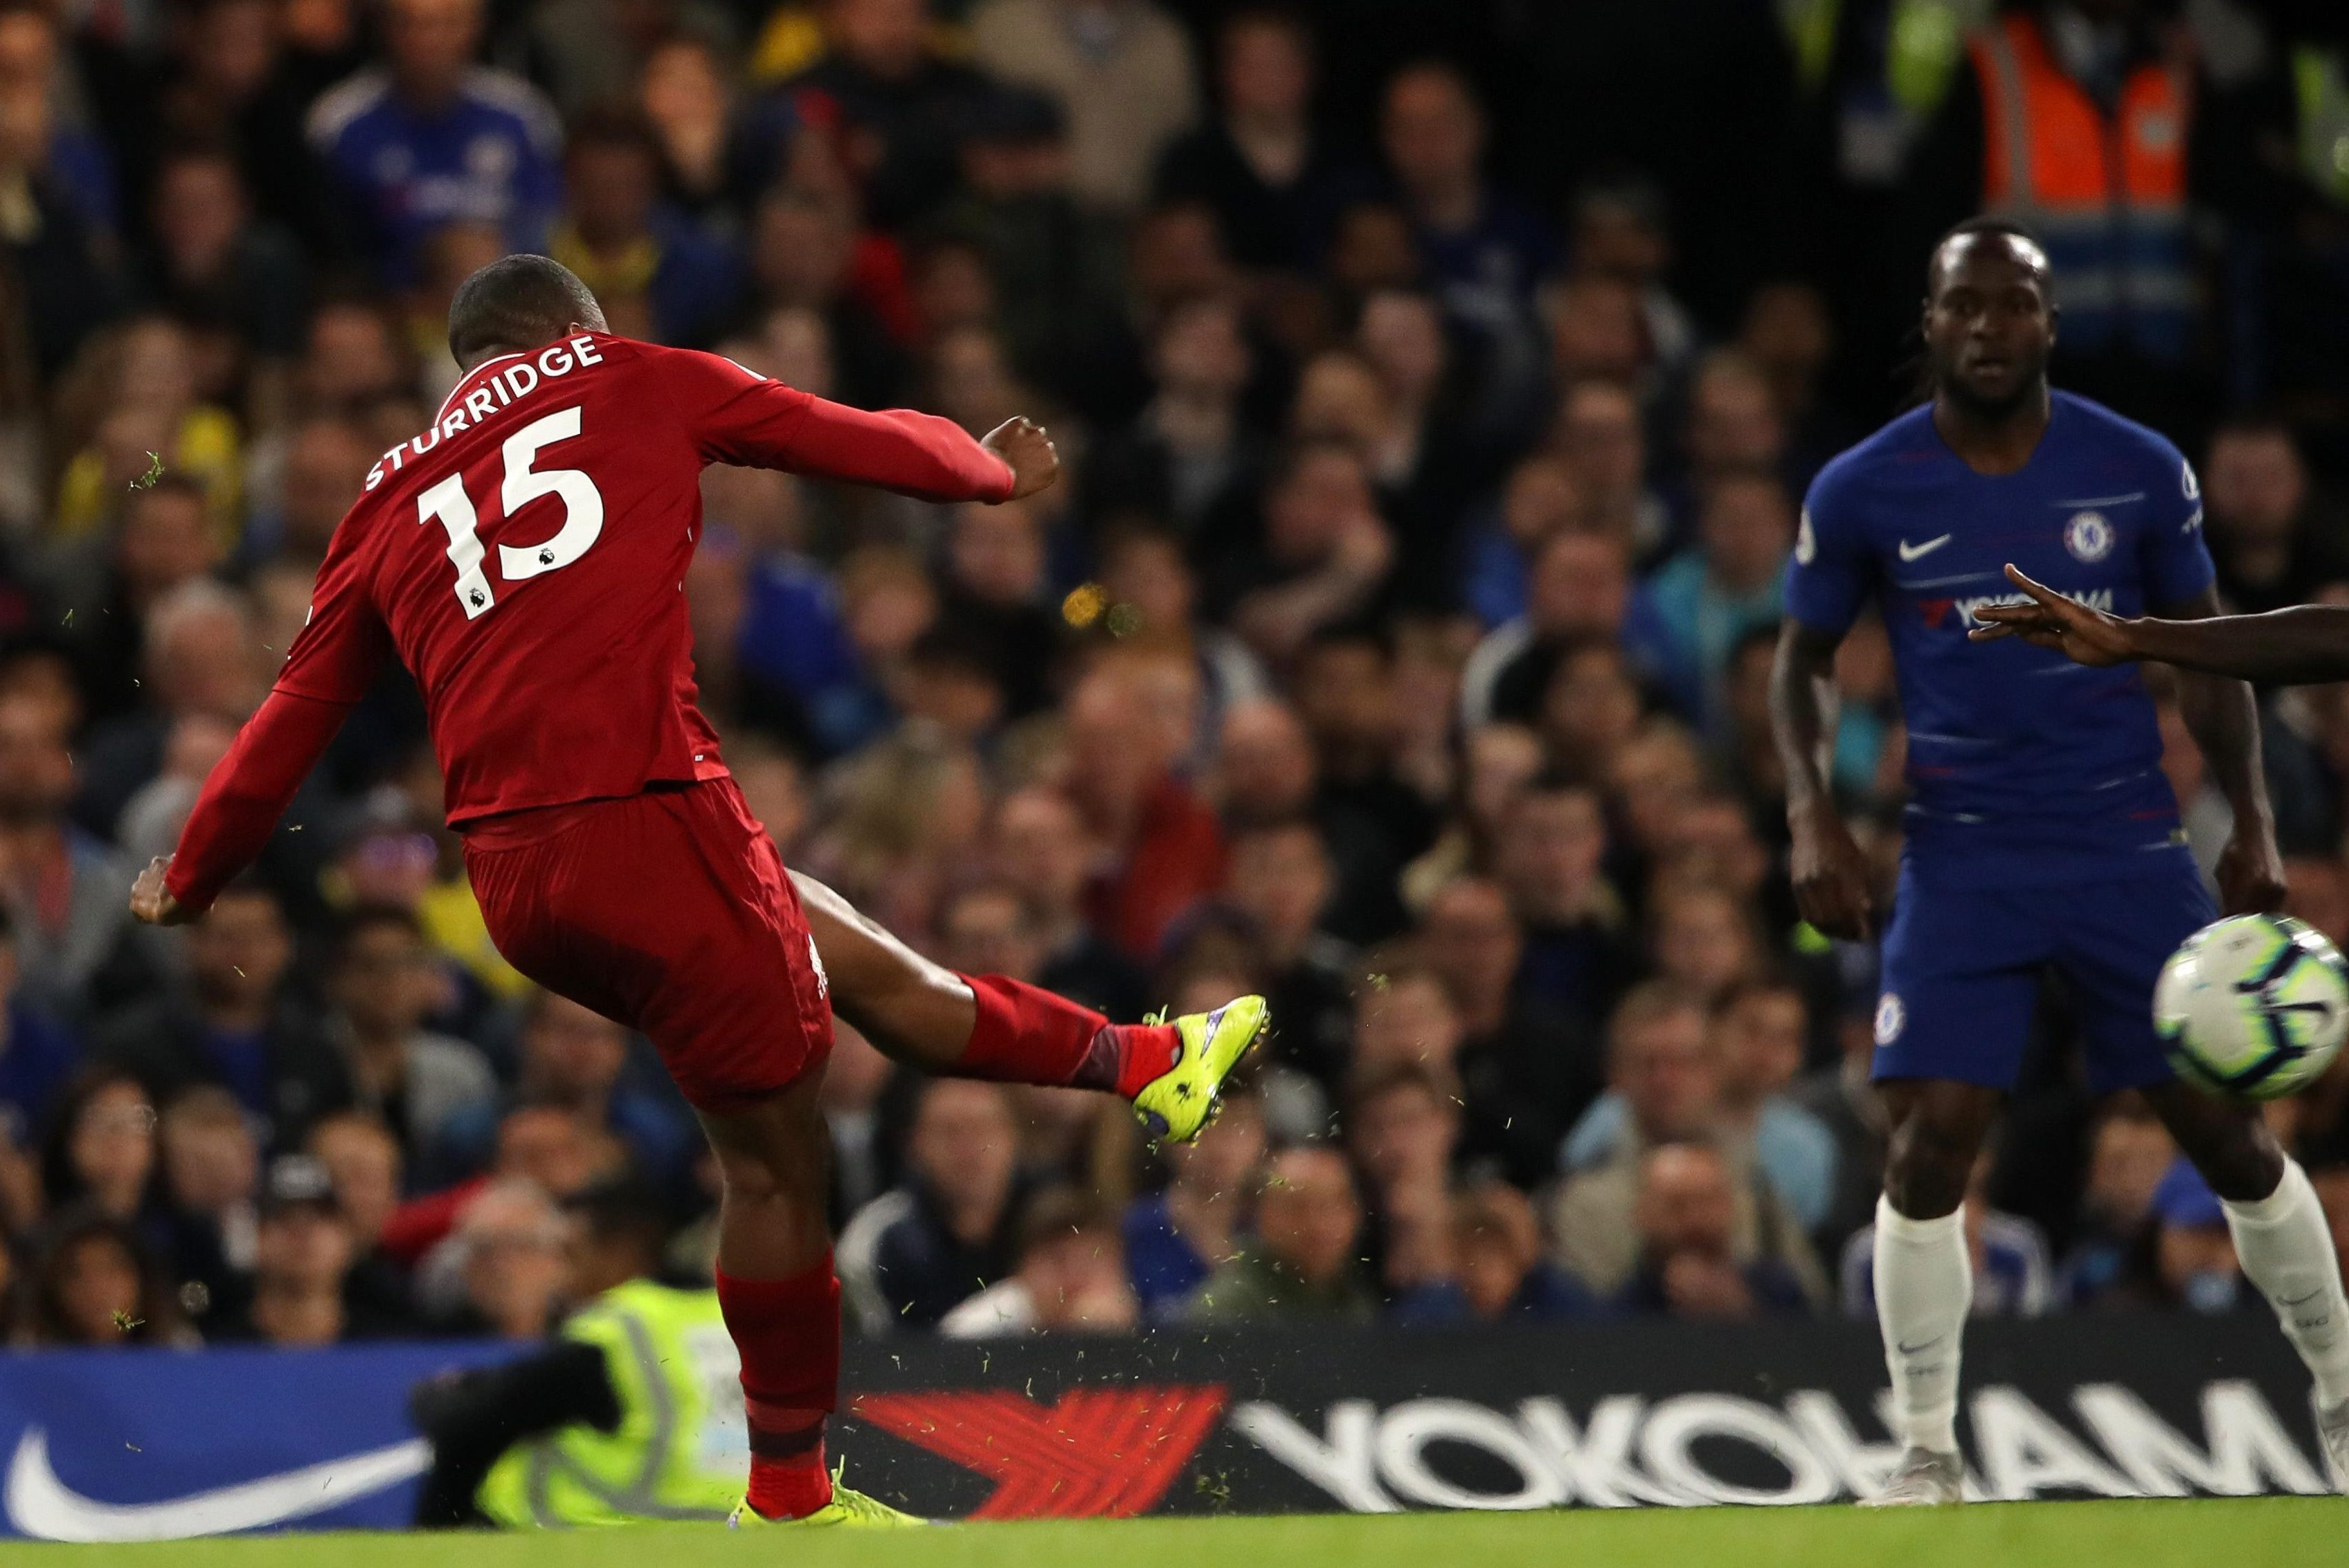 Daniel Sturridge earned Liverpool a point with a late screamer at Chelsea